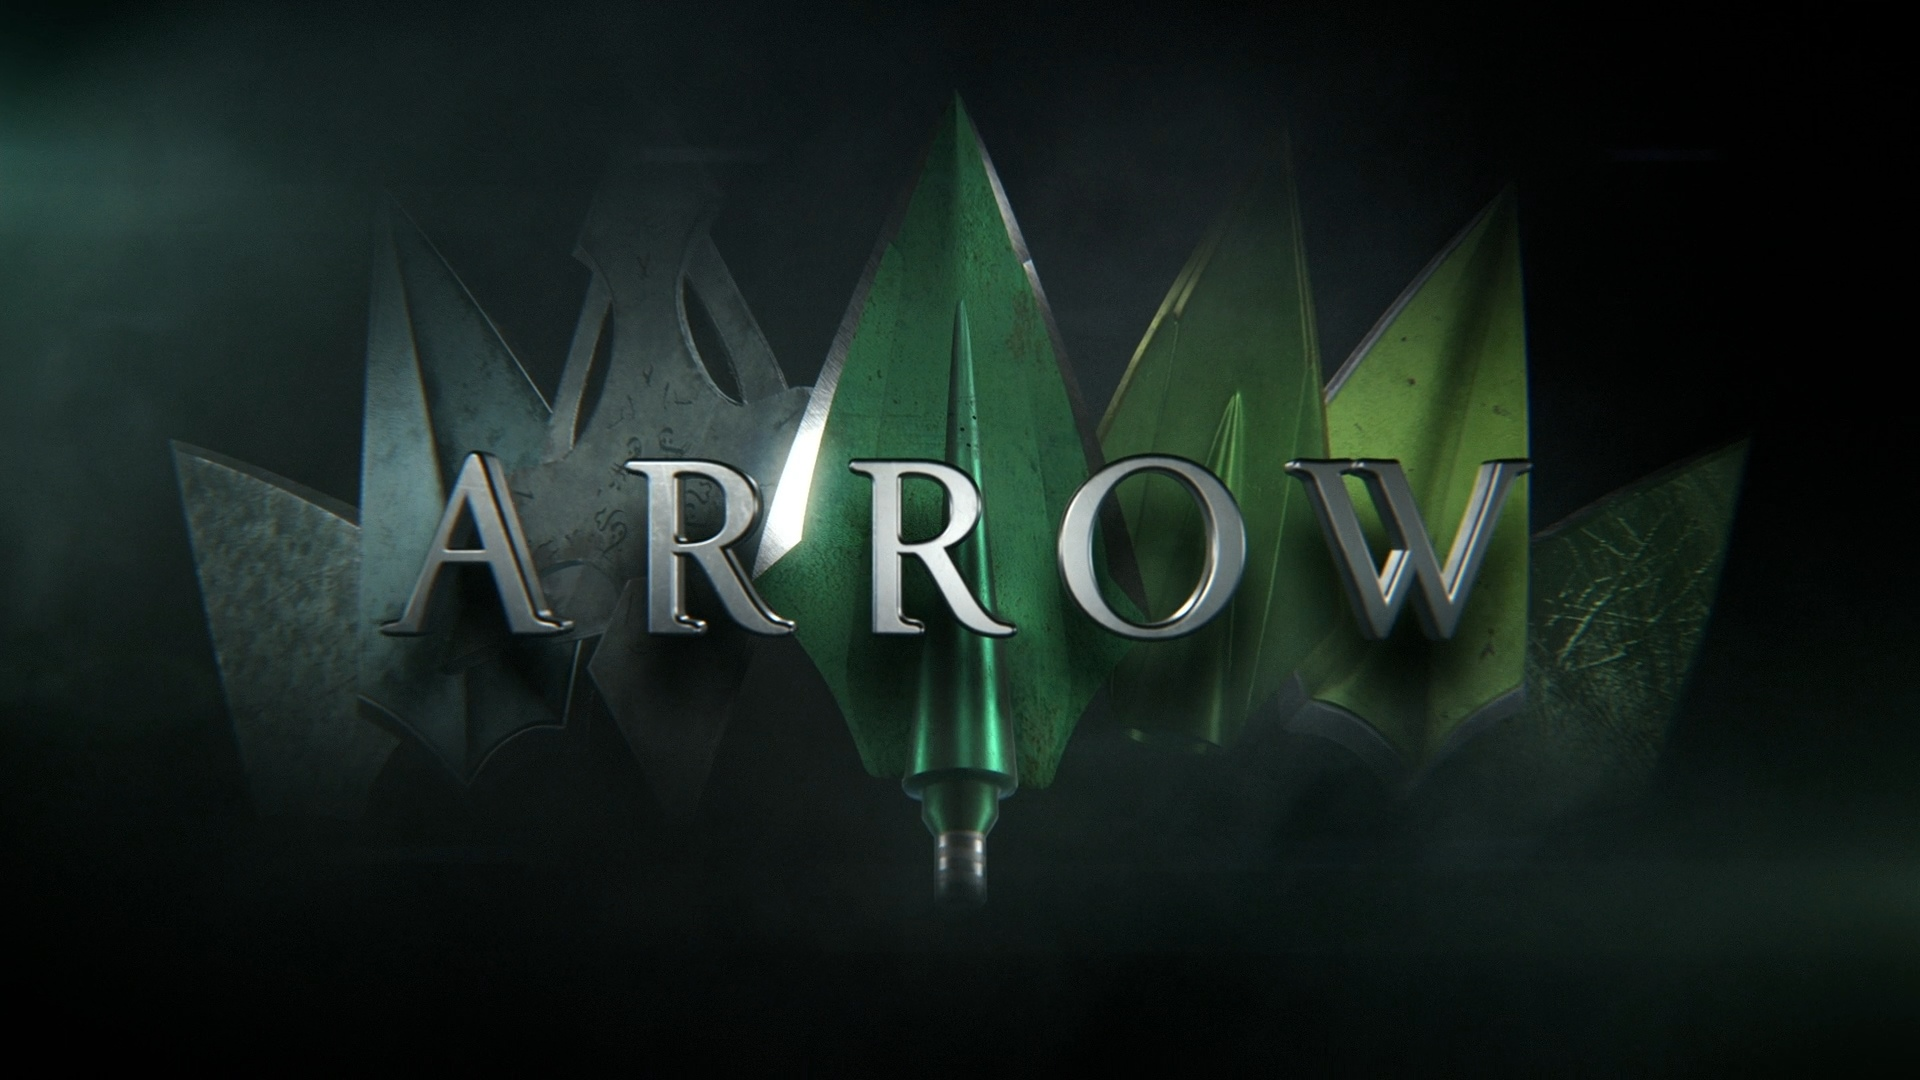 Arrow (TV Series) Episode: Fadeout